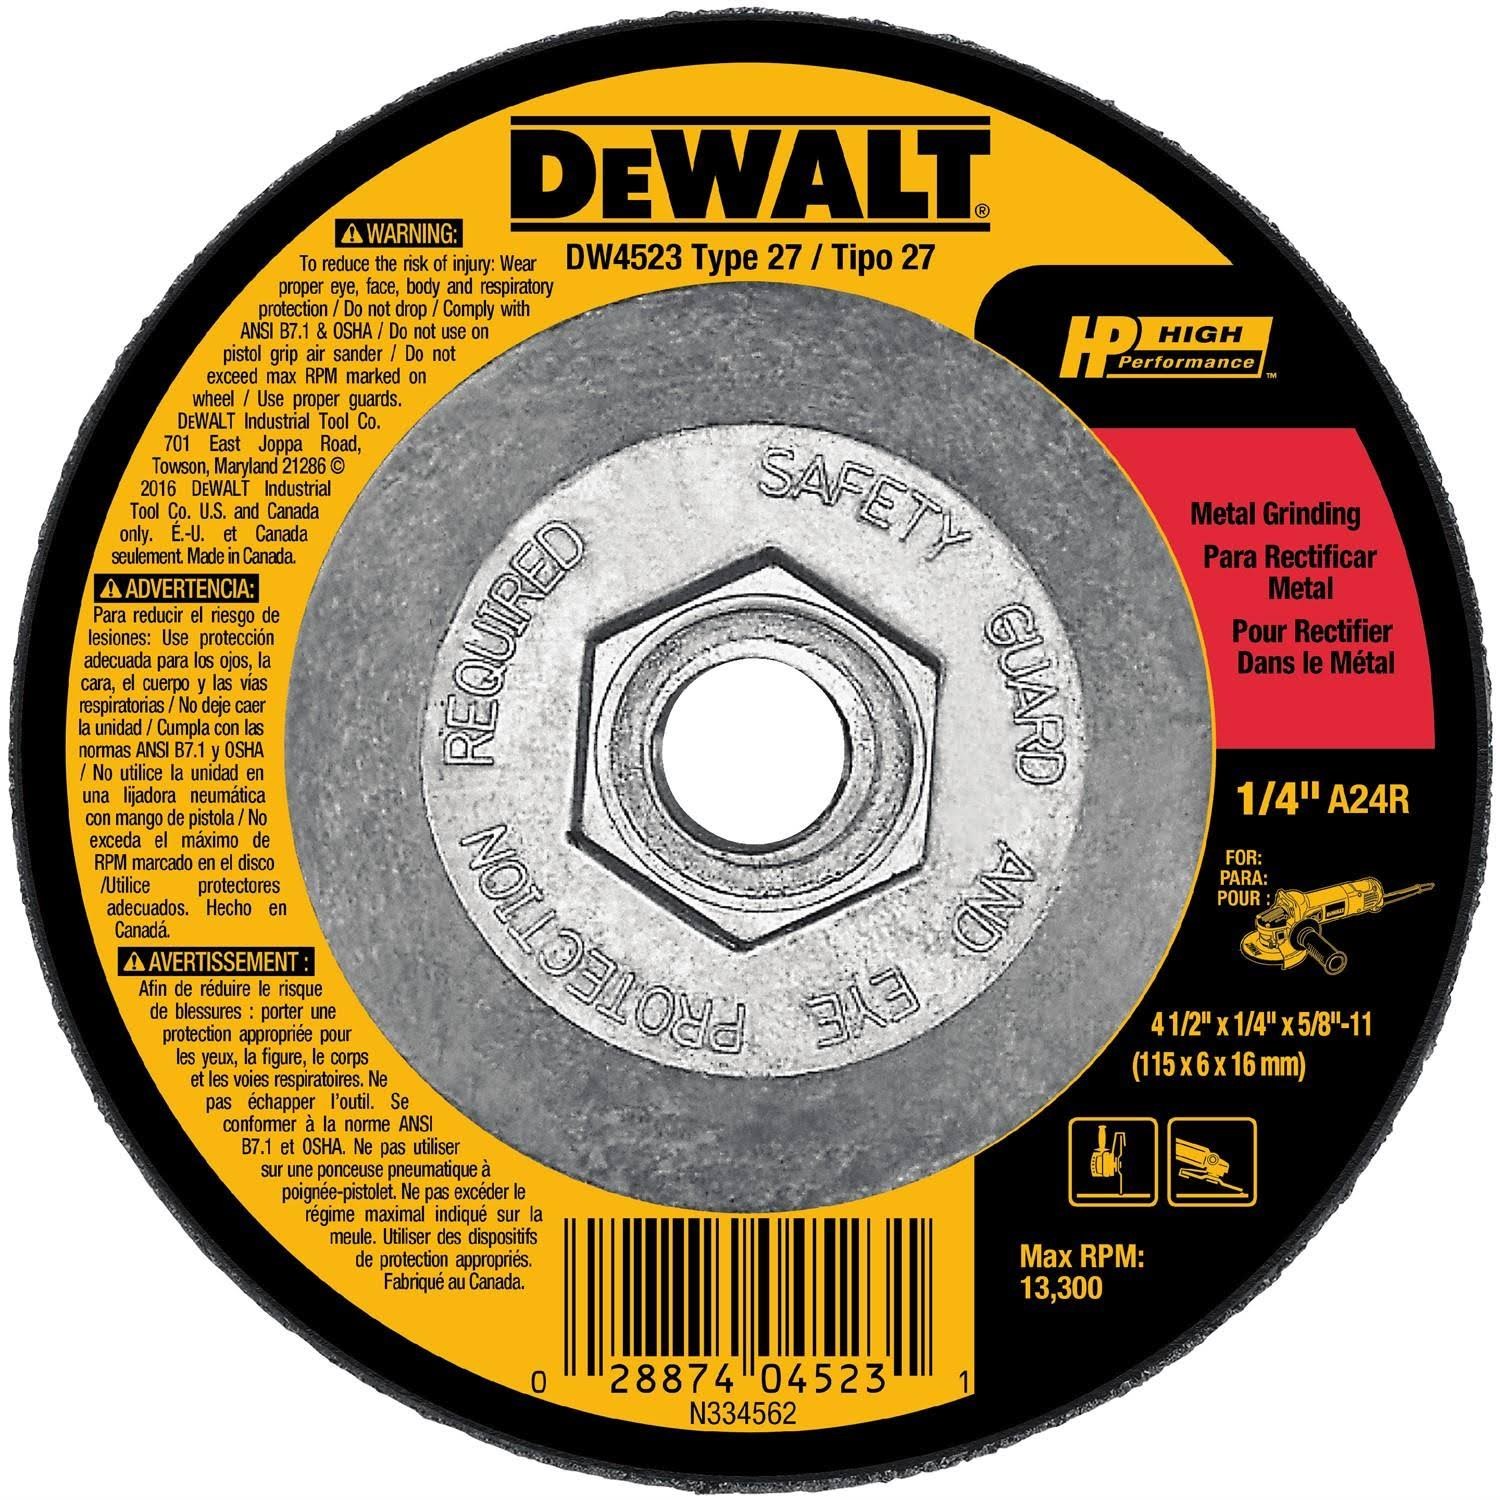 "DeWalt High Performance Metal Grinding Wheels - 4 1/2"" x 1/4"" x 5/8"""